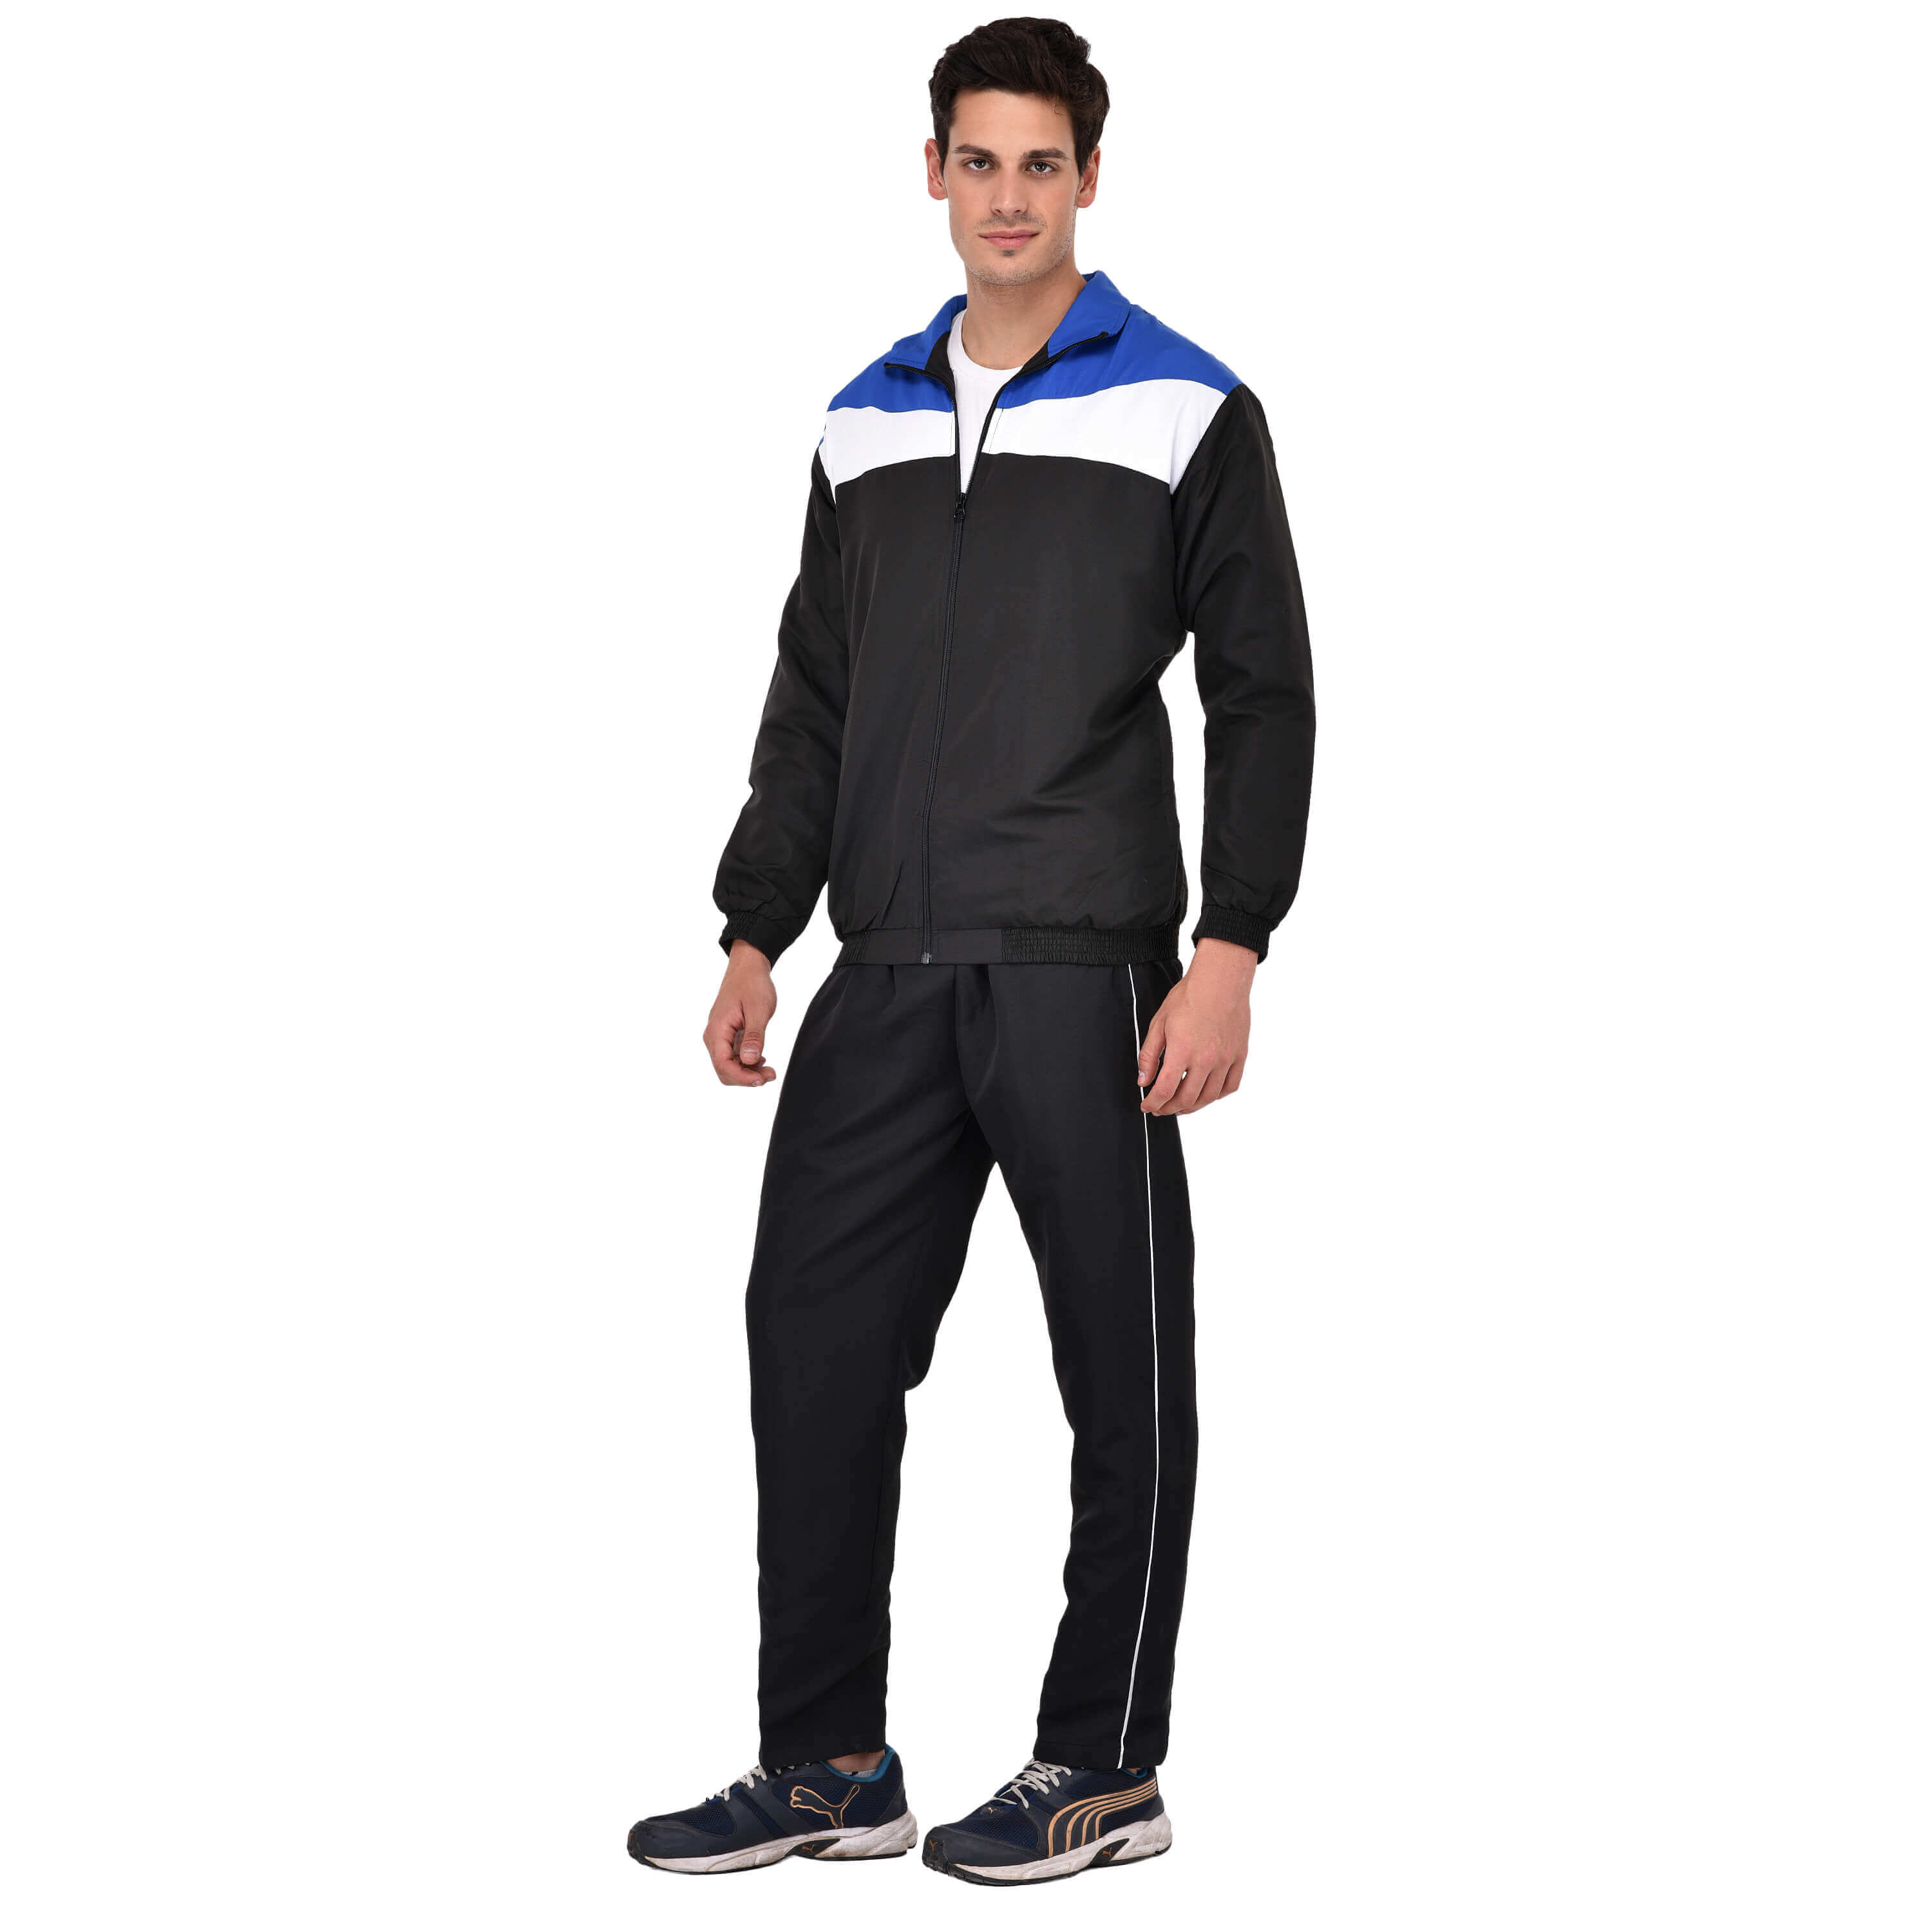 Tracksuit Set Manufacturers in Pune